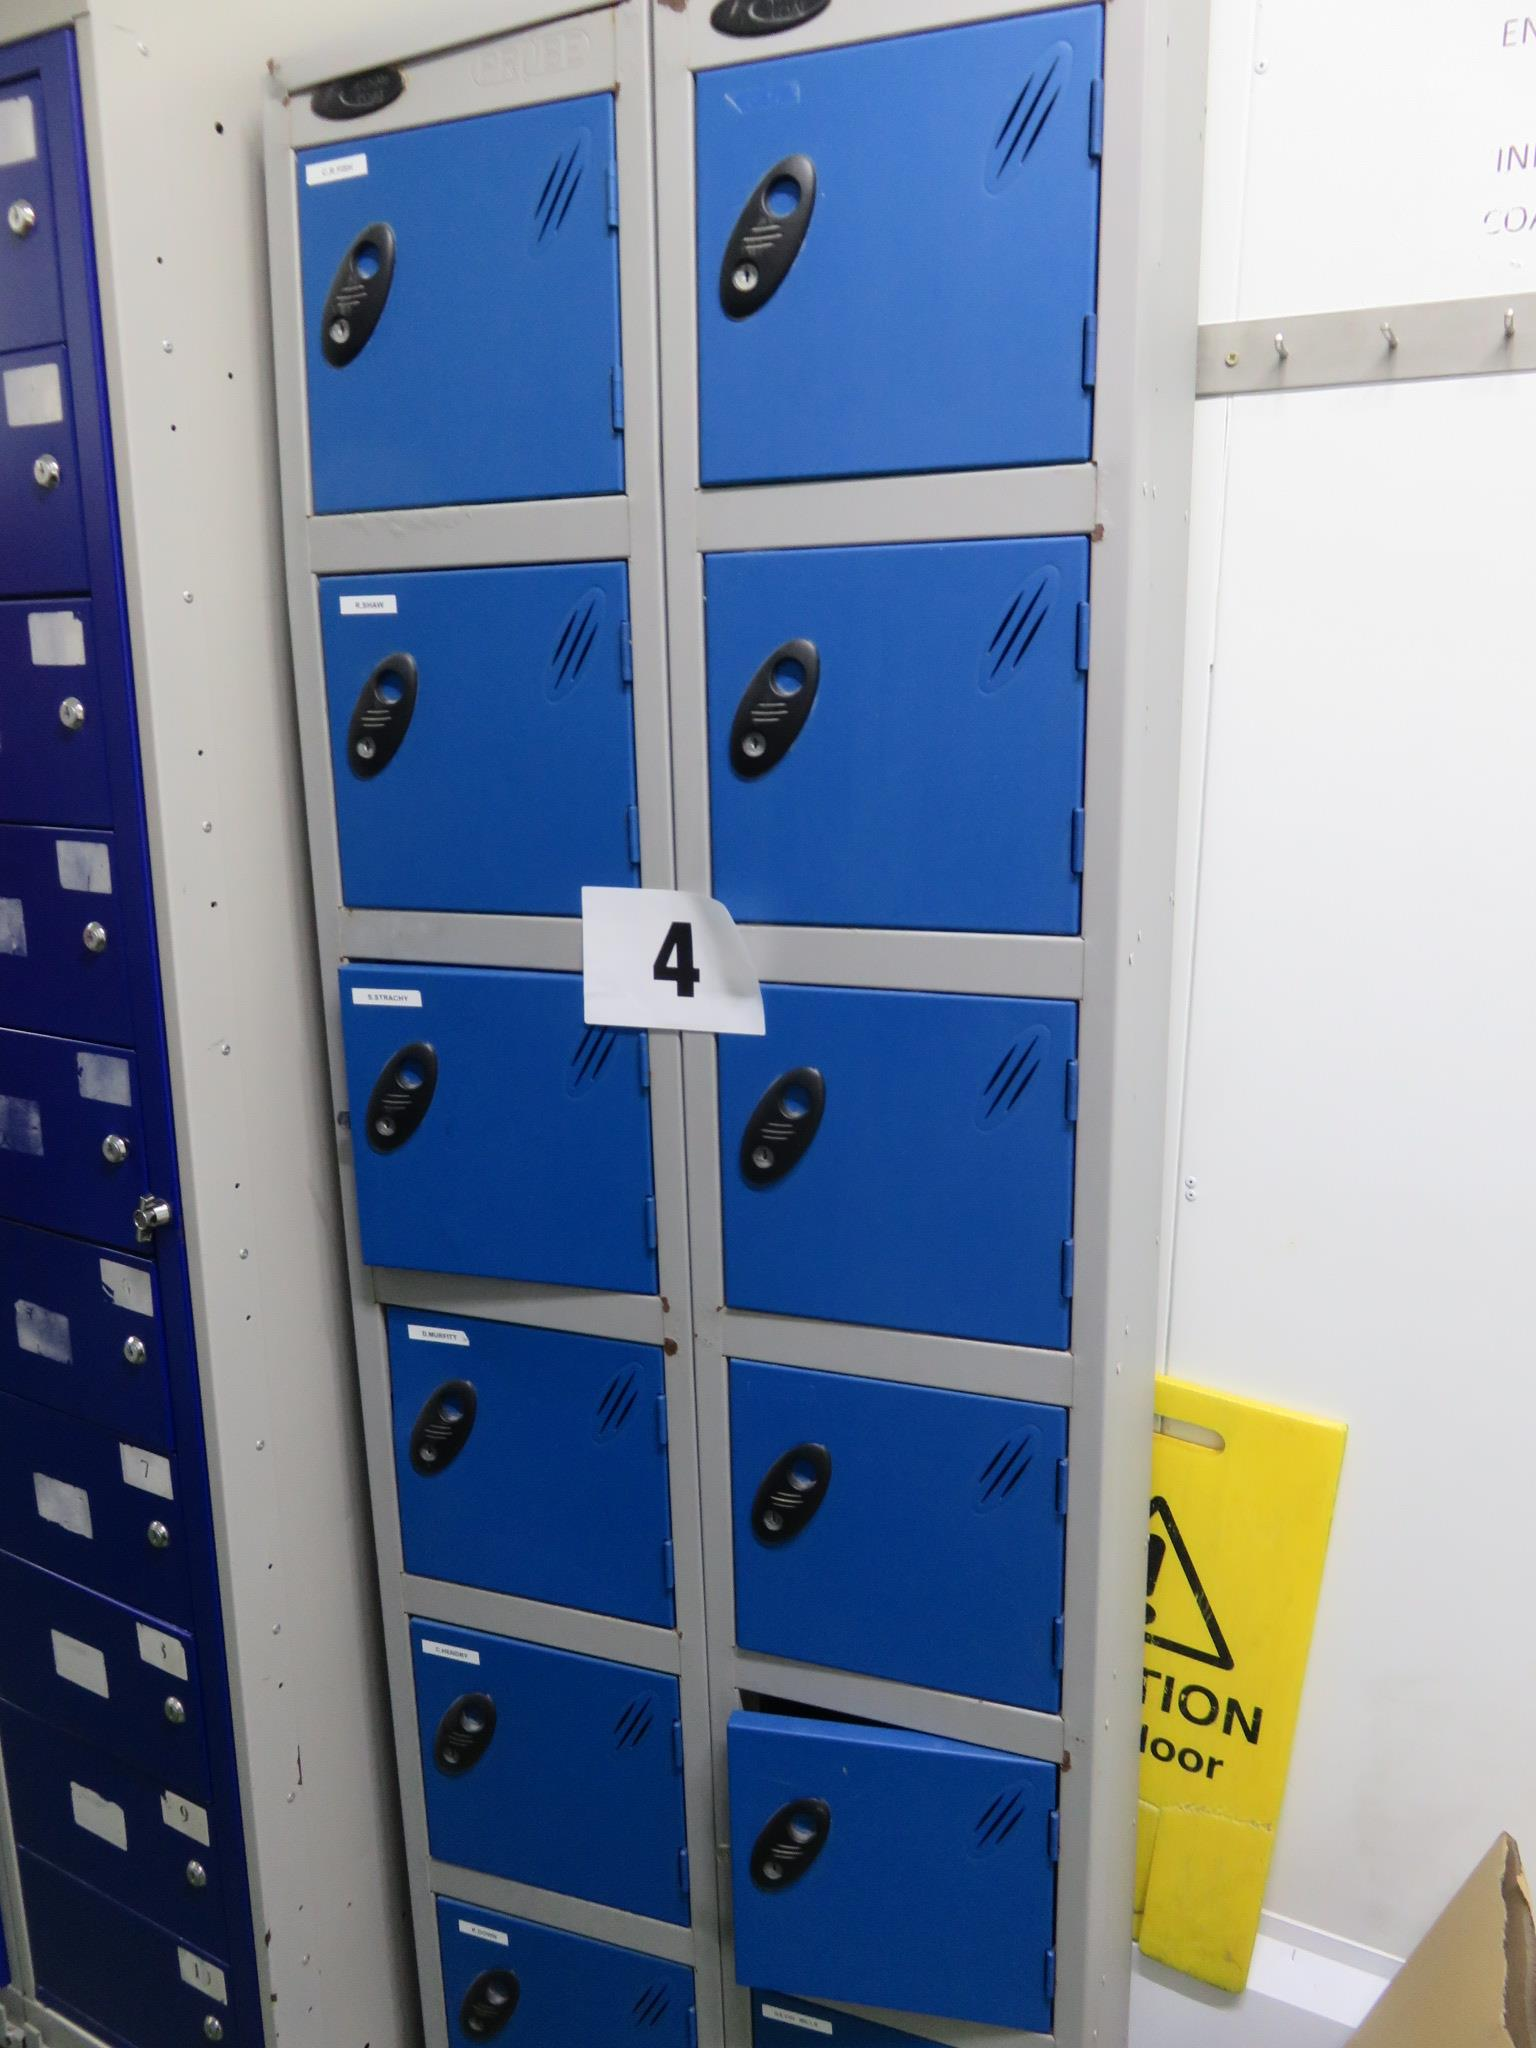 Lot 4 - 1 x Locker with 12 individual compartments. Lift out £10